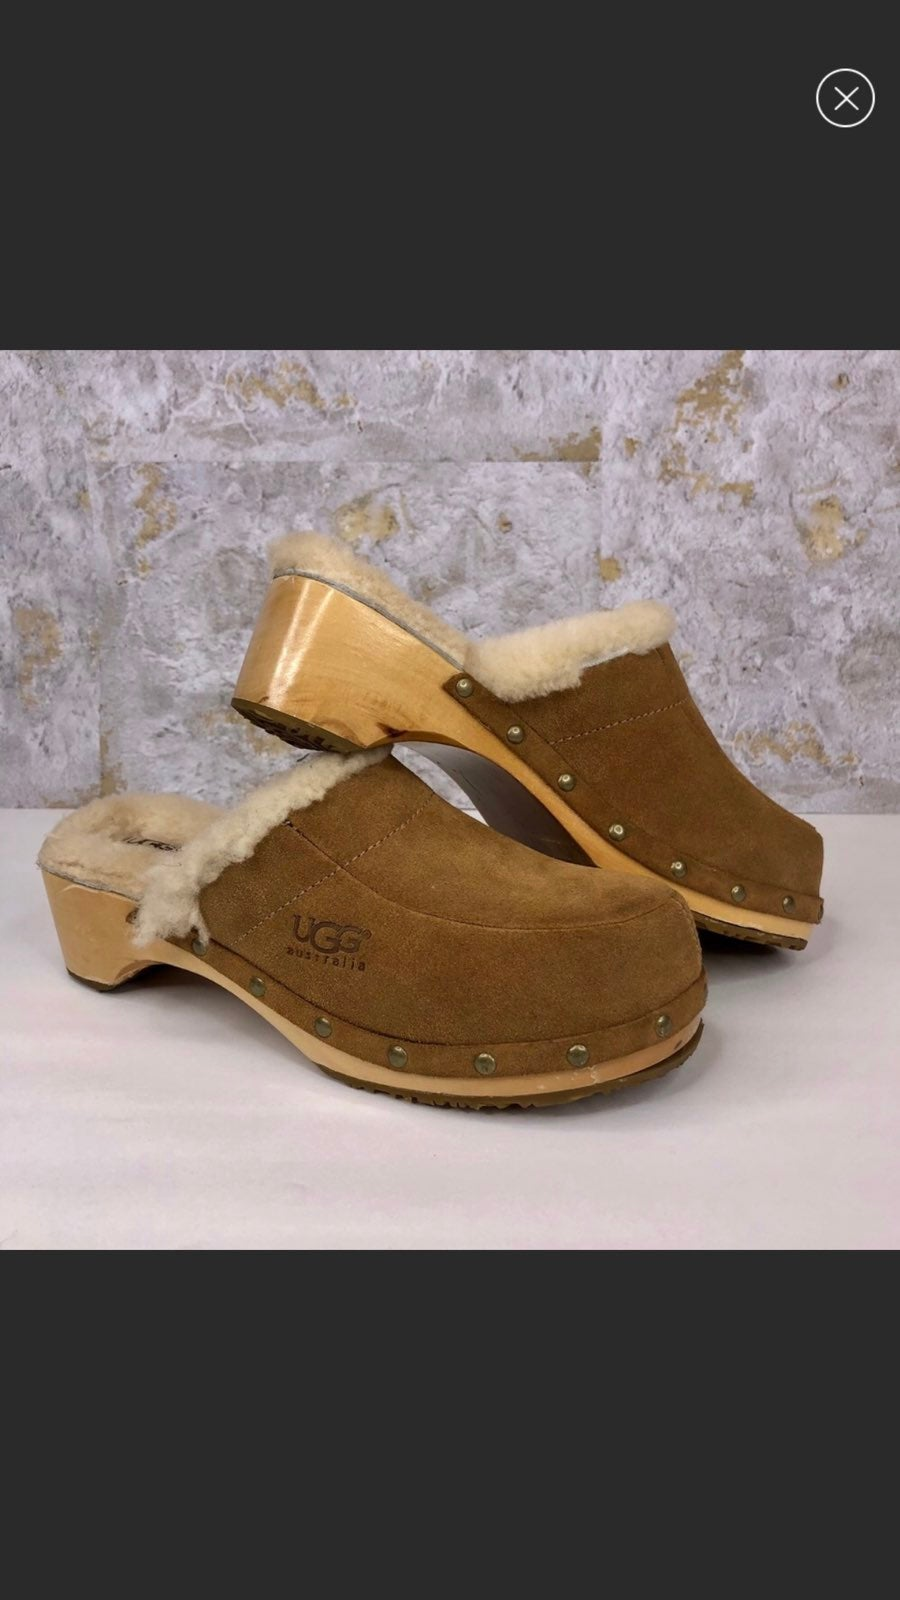 UGG Womens Tan Suede Leather Clogs 8